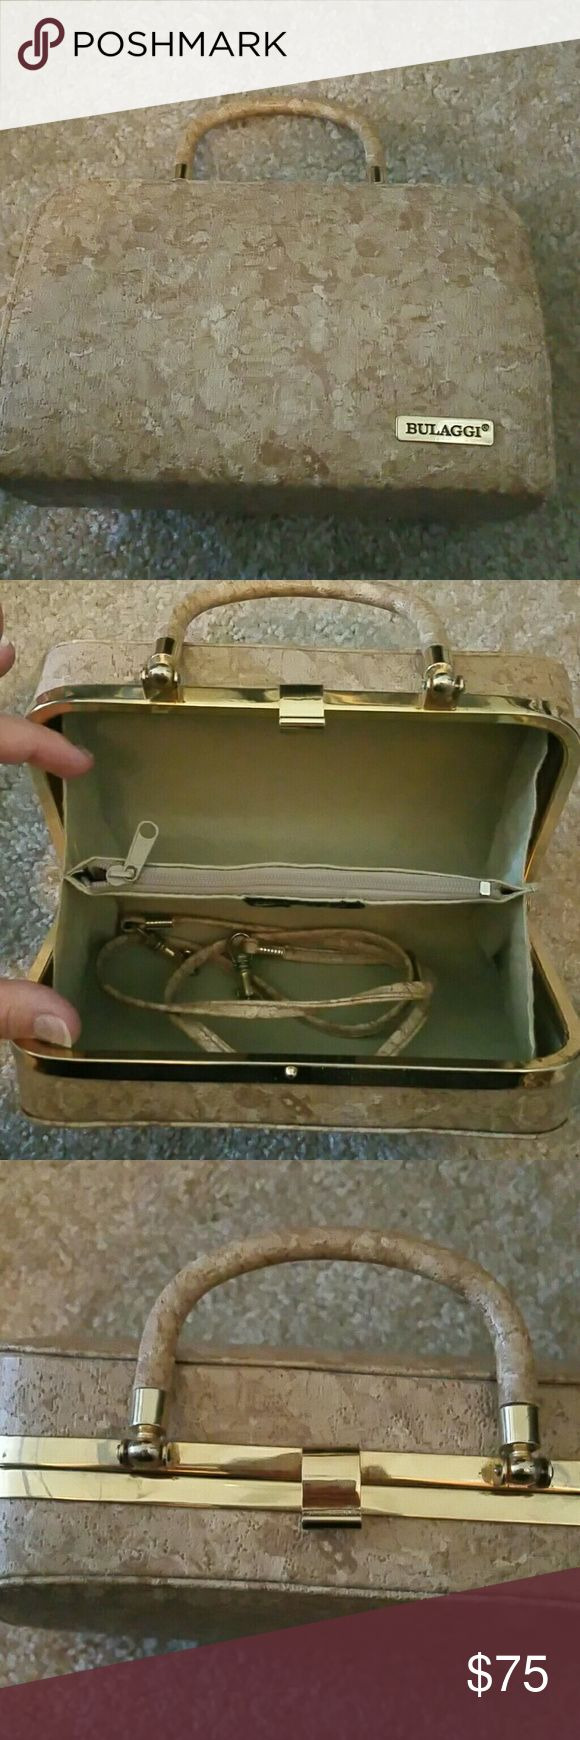 MOVING SALE Vintage Bulaga leather baguette ALL MUST GO! Excellent condition.  No offers  No trades bulaggi Bags Mini Bags